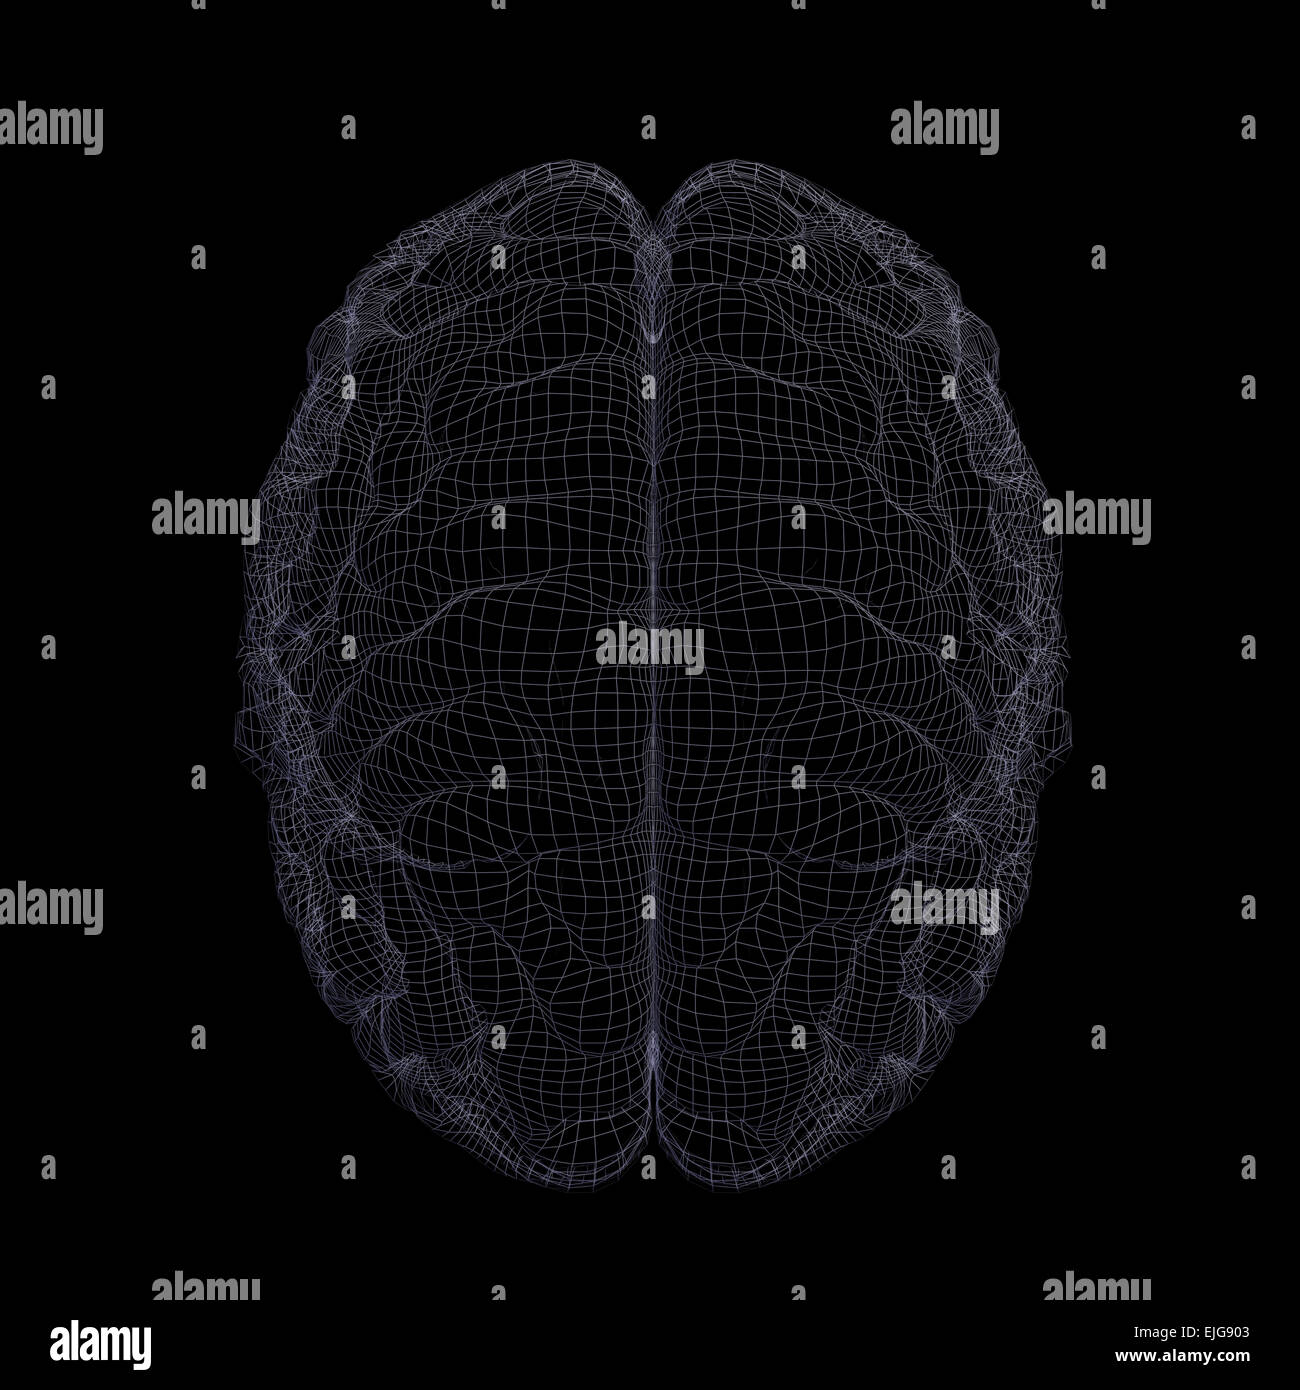 Wire-frame of human brain - Stock Image